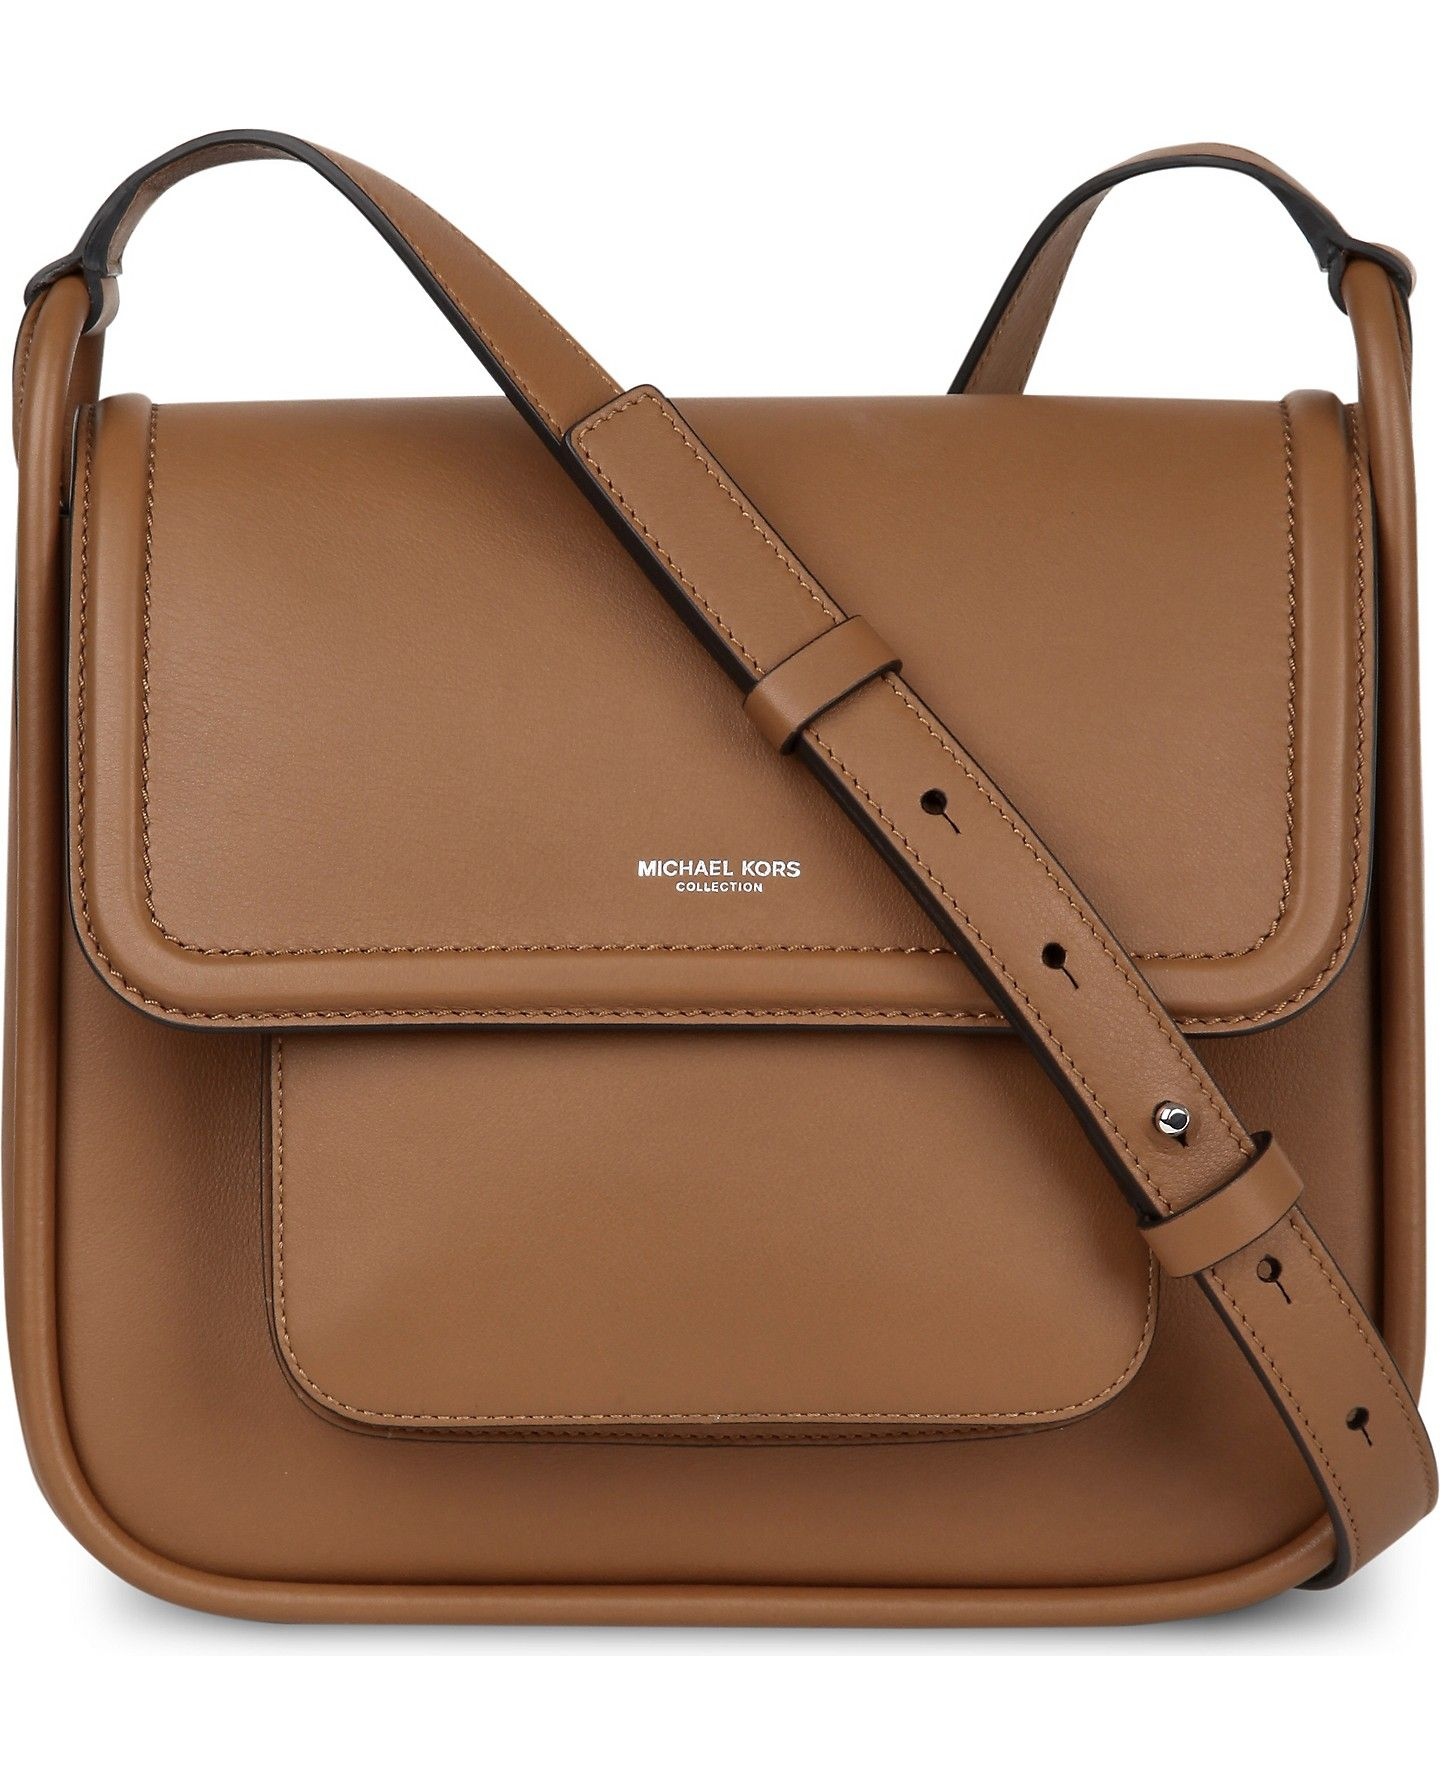 3d2f3273d7f MICHAEL KORS COLLECTION - Tenby leather cross-body bag